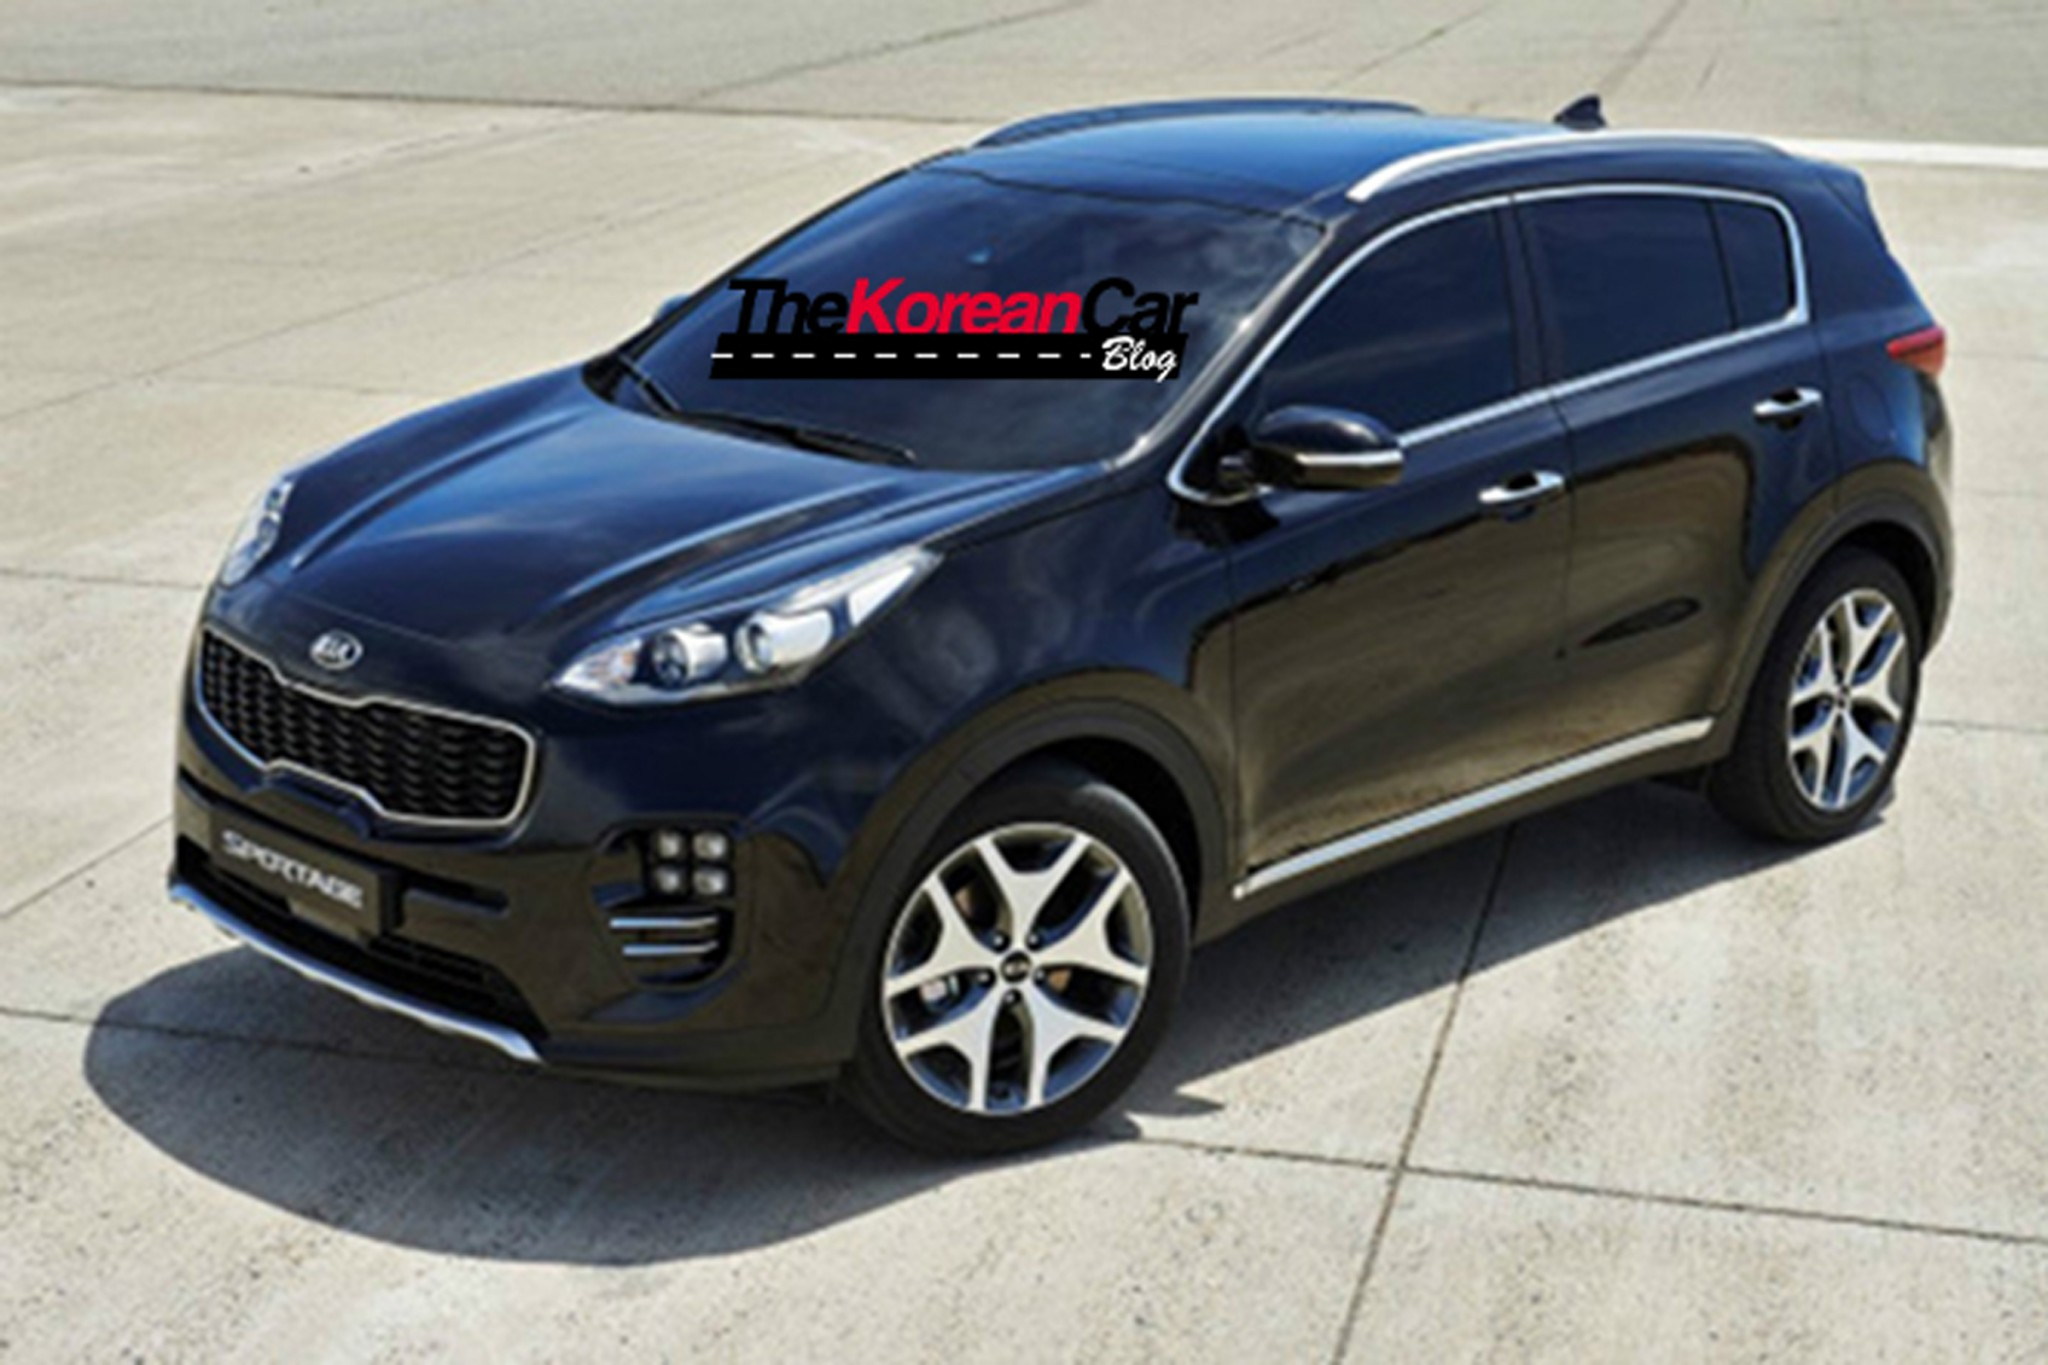 all new 2016 kia sportage revealed in leaked images practical motoring. Black Bedroom Furniture Sets. Home Design Ideas